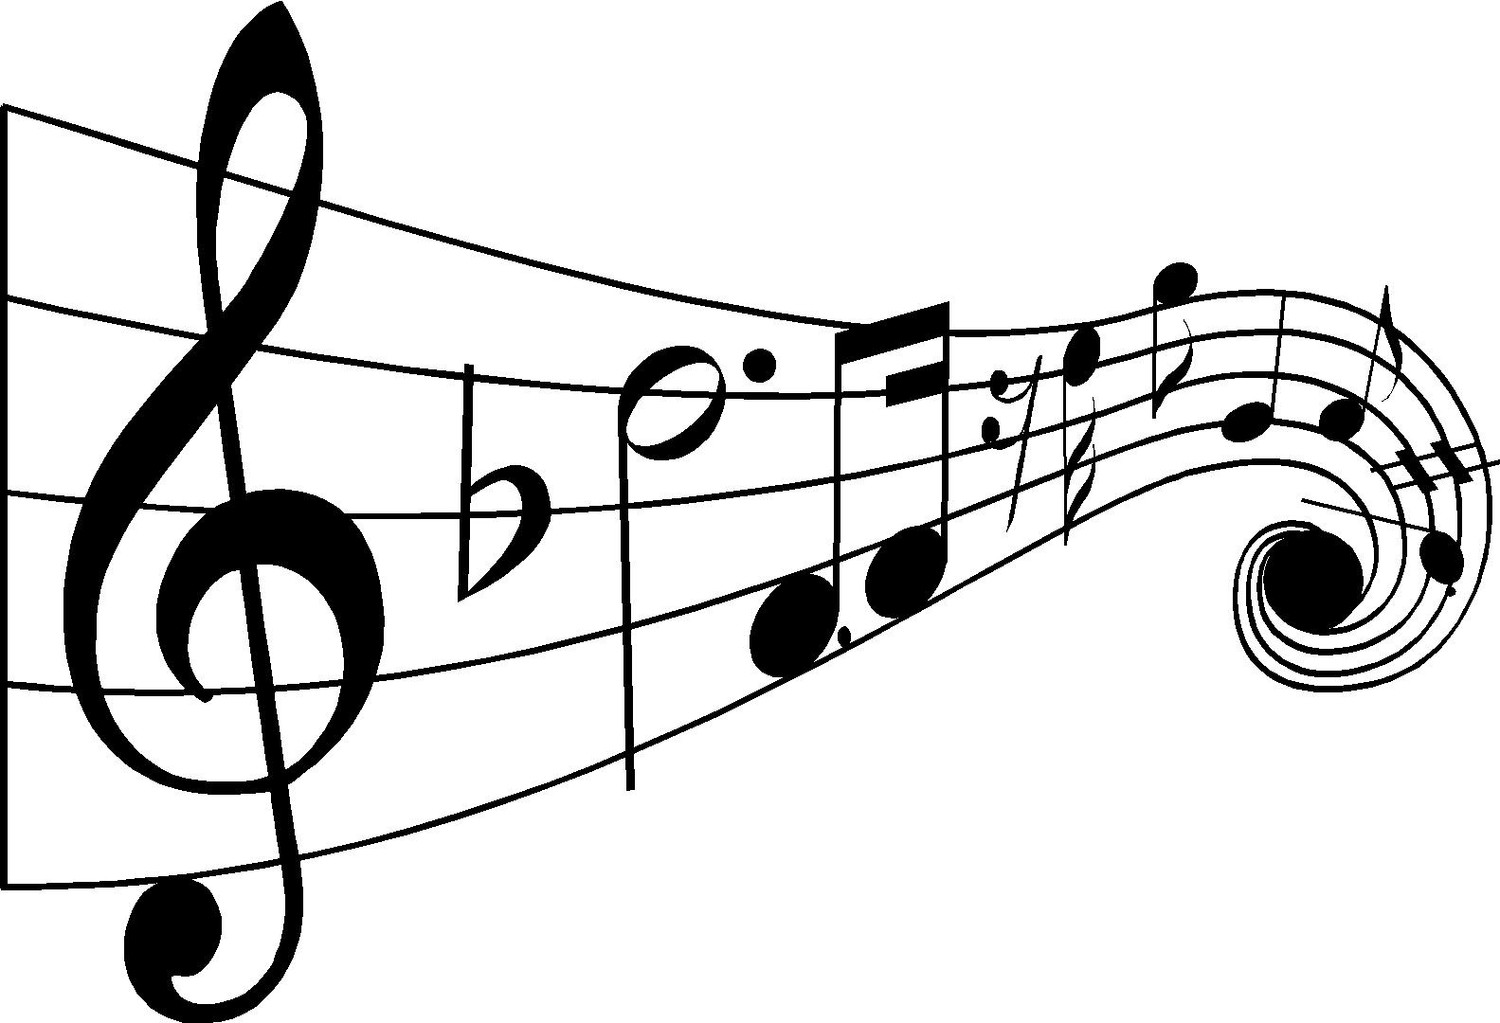 Drawn music notes clipart transparent Drawings  Music Art Images